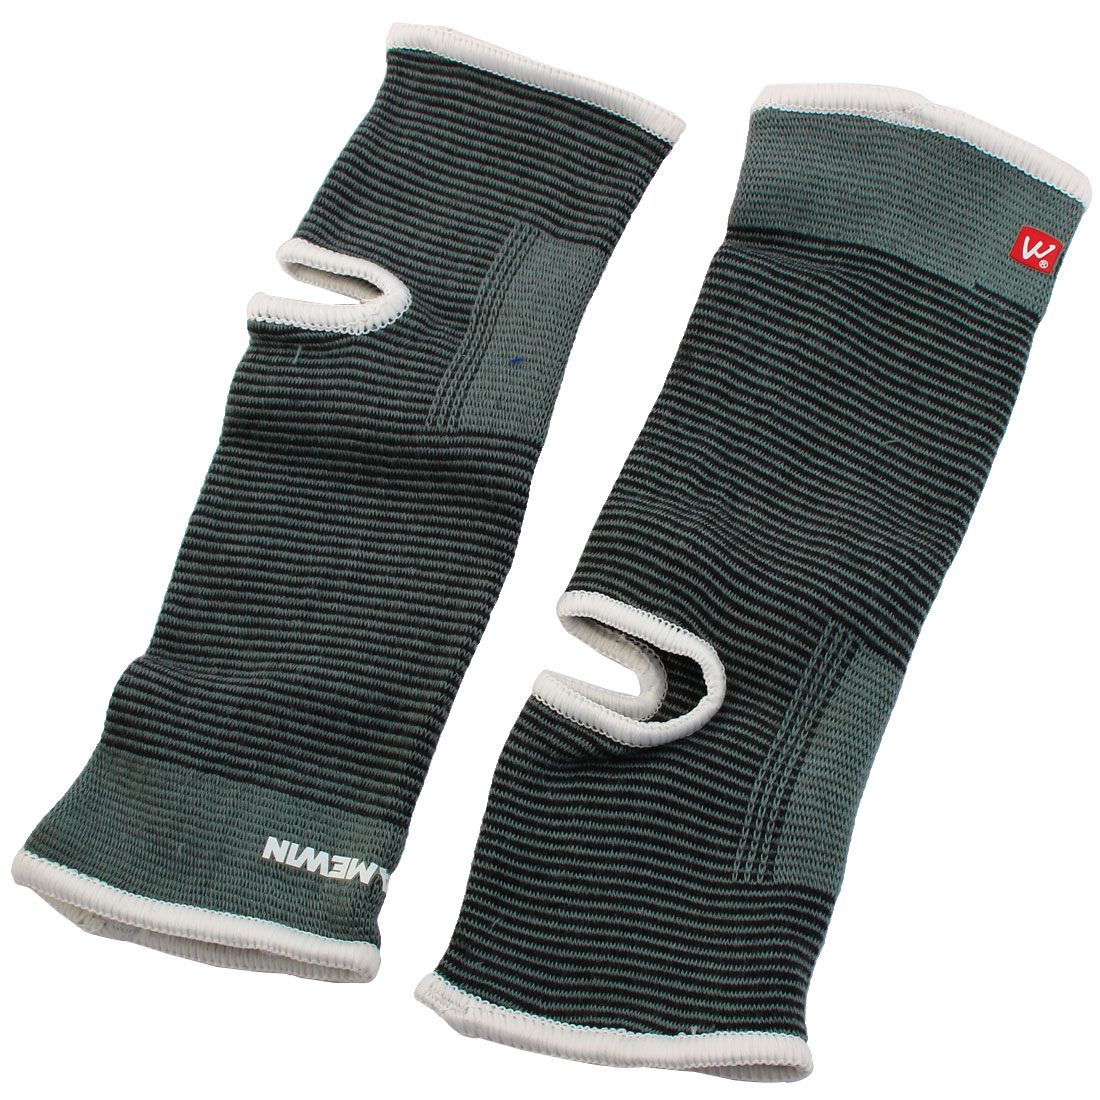 Sports Running Elastic Ankle Support Protector Gray Black